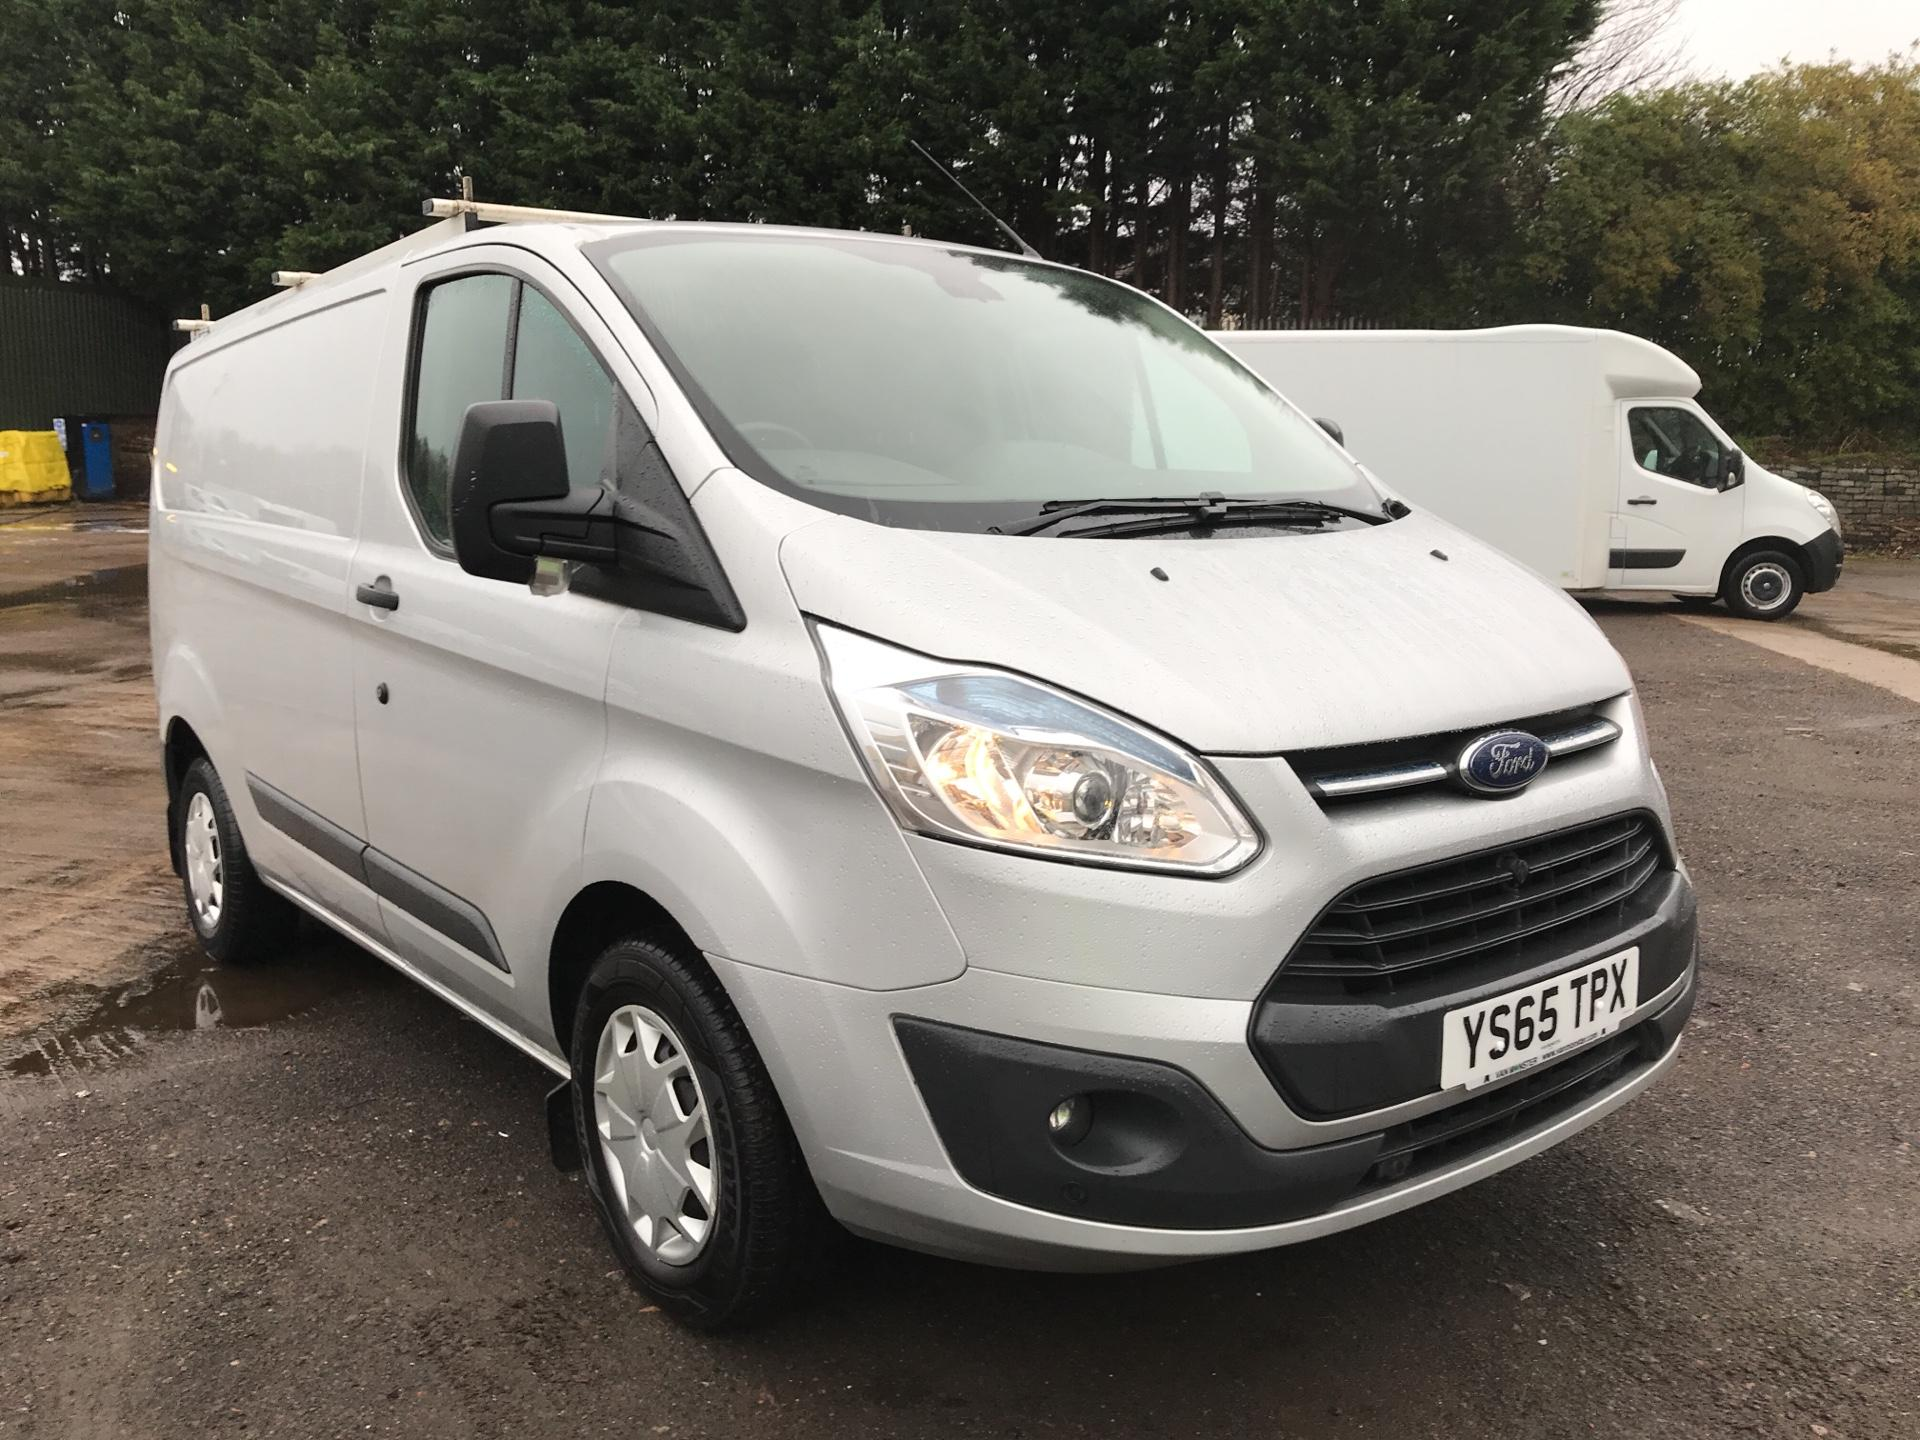 2016 Ford Transit Custom  270 L1 DIESEL FWD 2.2 TDCI 125PS LOW ROOF TREND EURO 5 (VALUE RANGE VEHICLE - CONDITION REFLECTED IN PRICE) (YS65TPX)